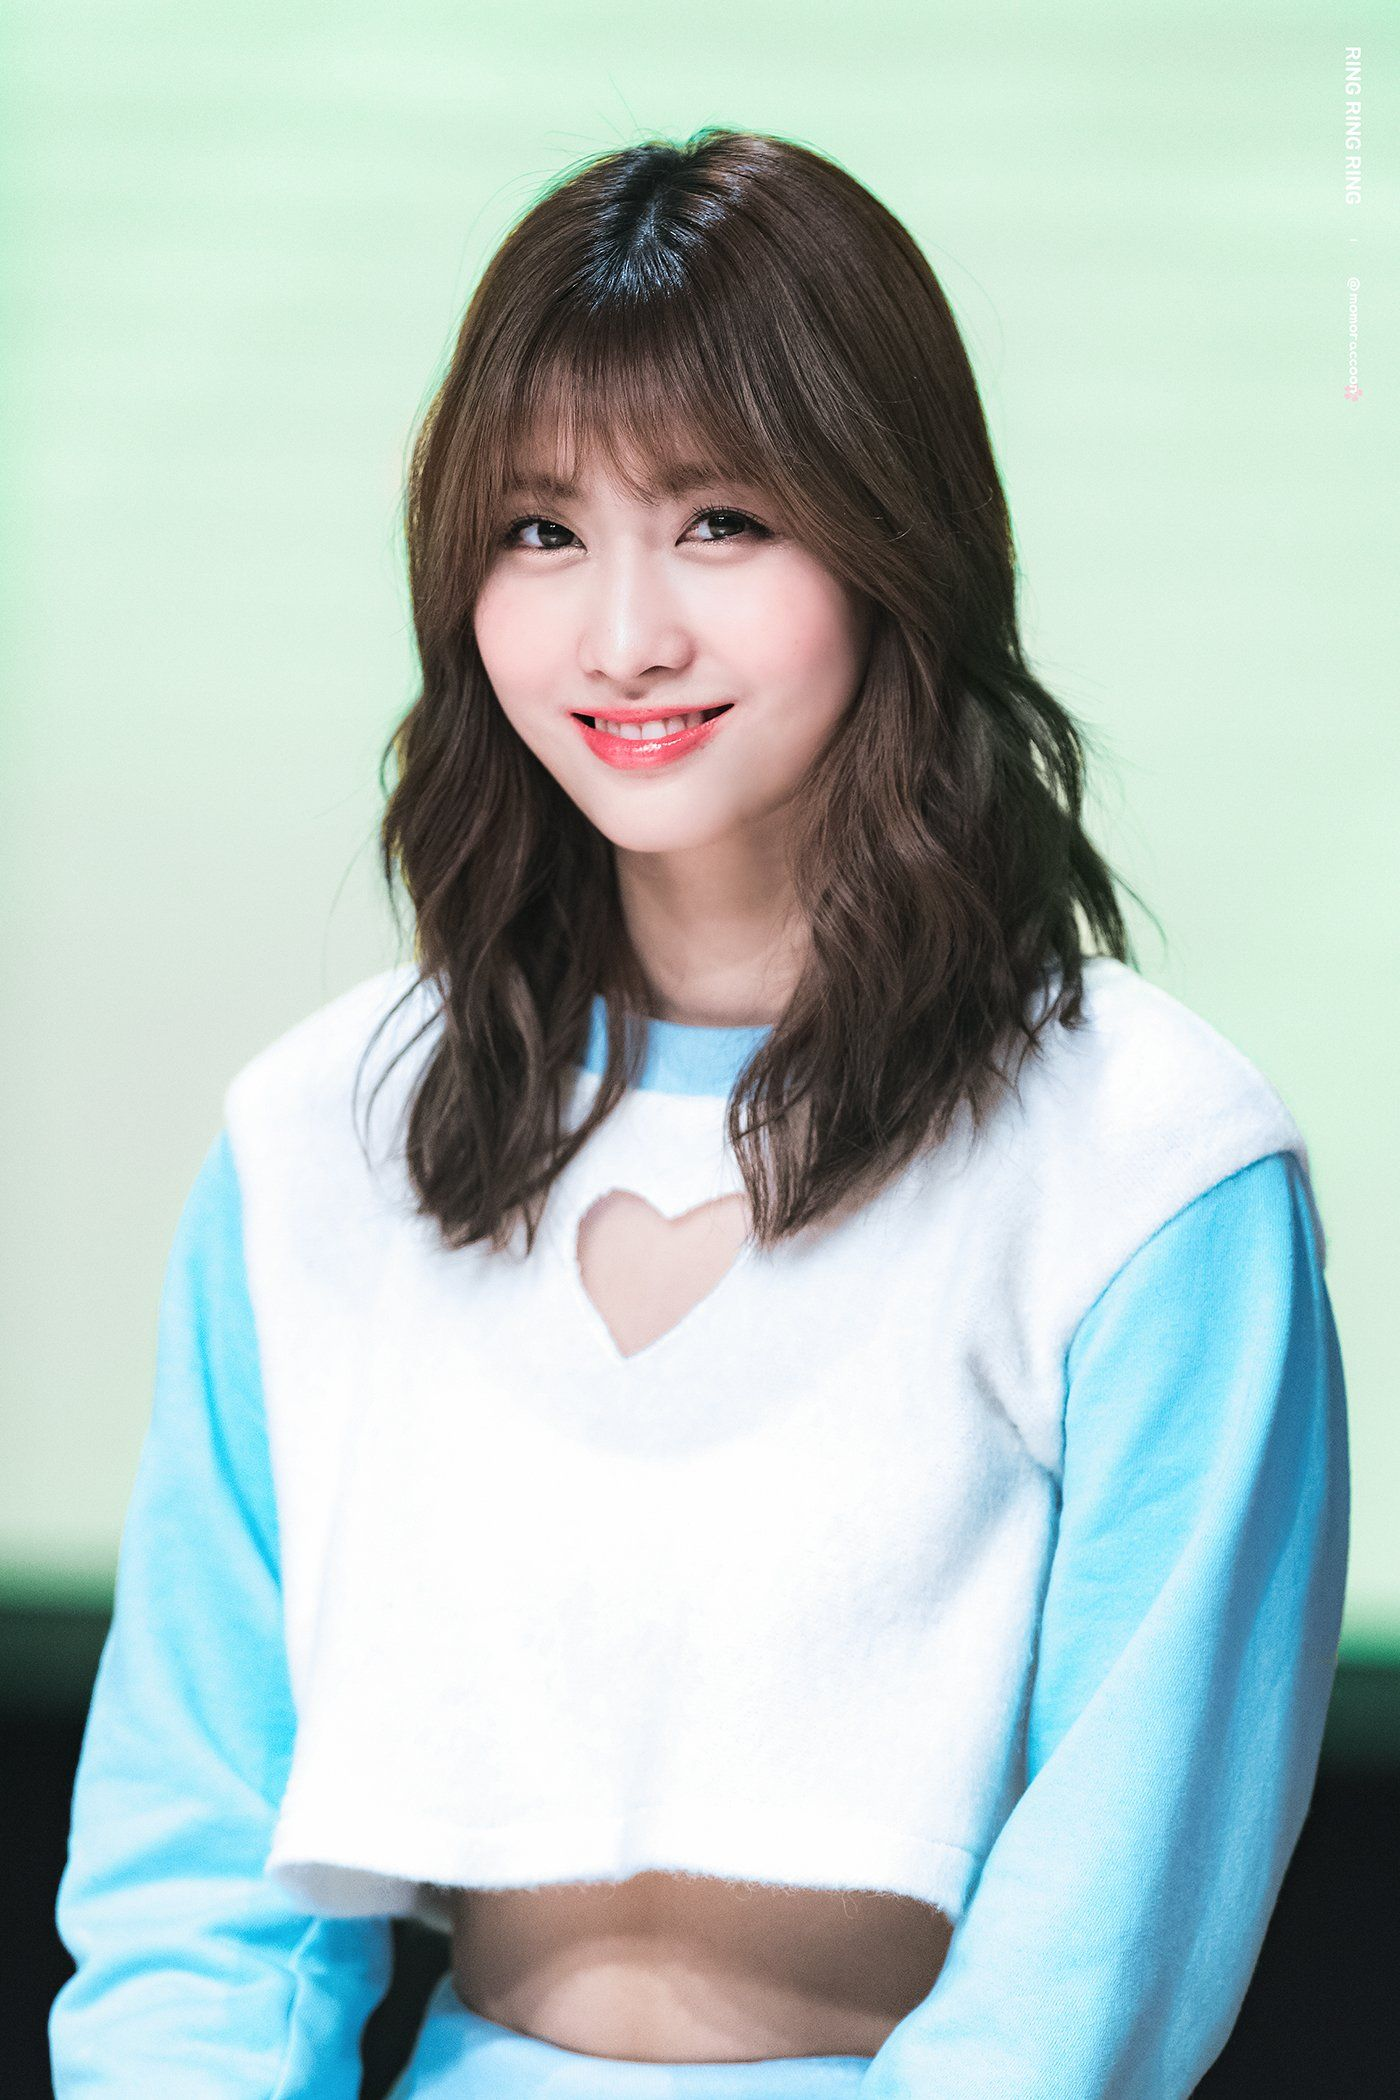 twice: momo #kpics #kpop #sweetgirls #lovethem #love #unsensored #girls #sweet #sexygirls #selfie #women